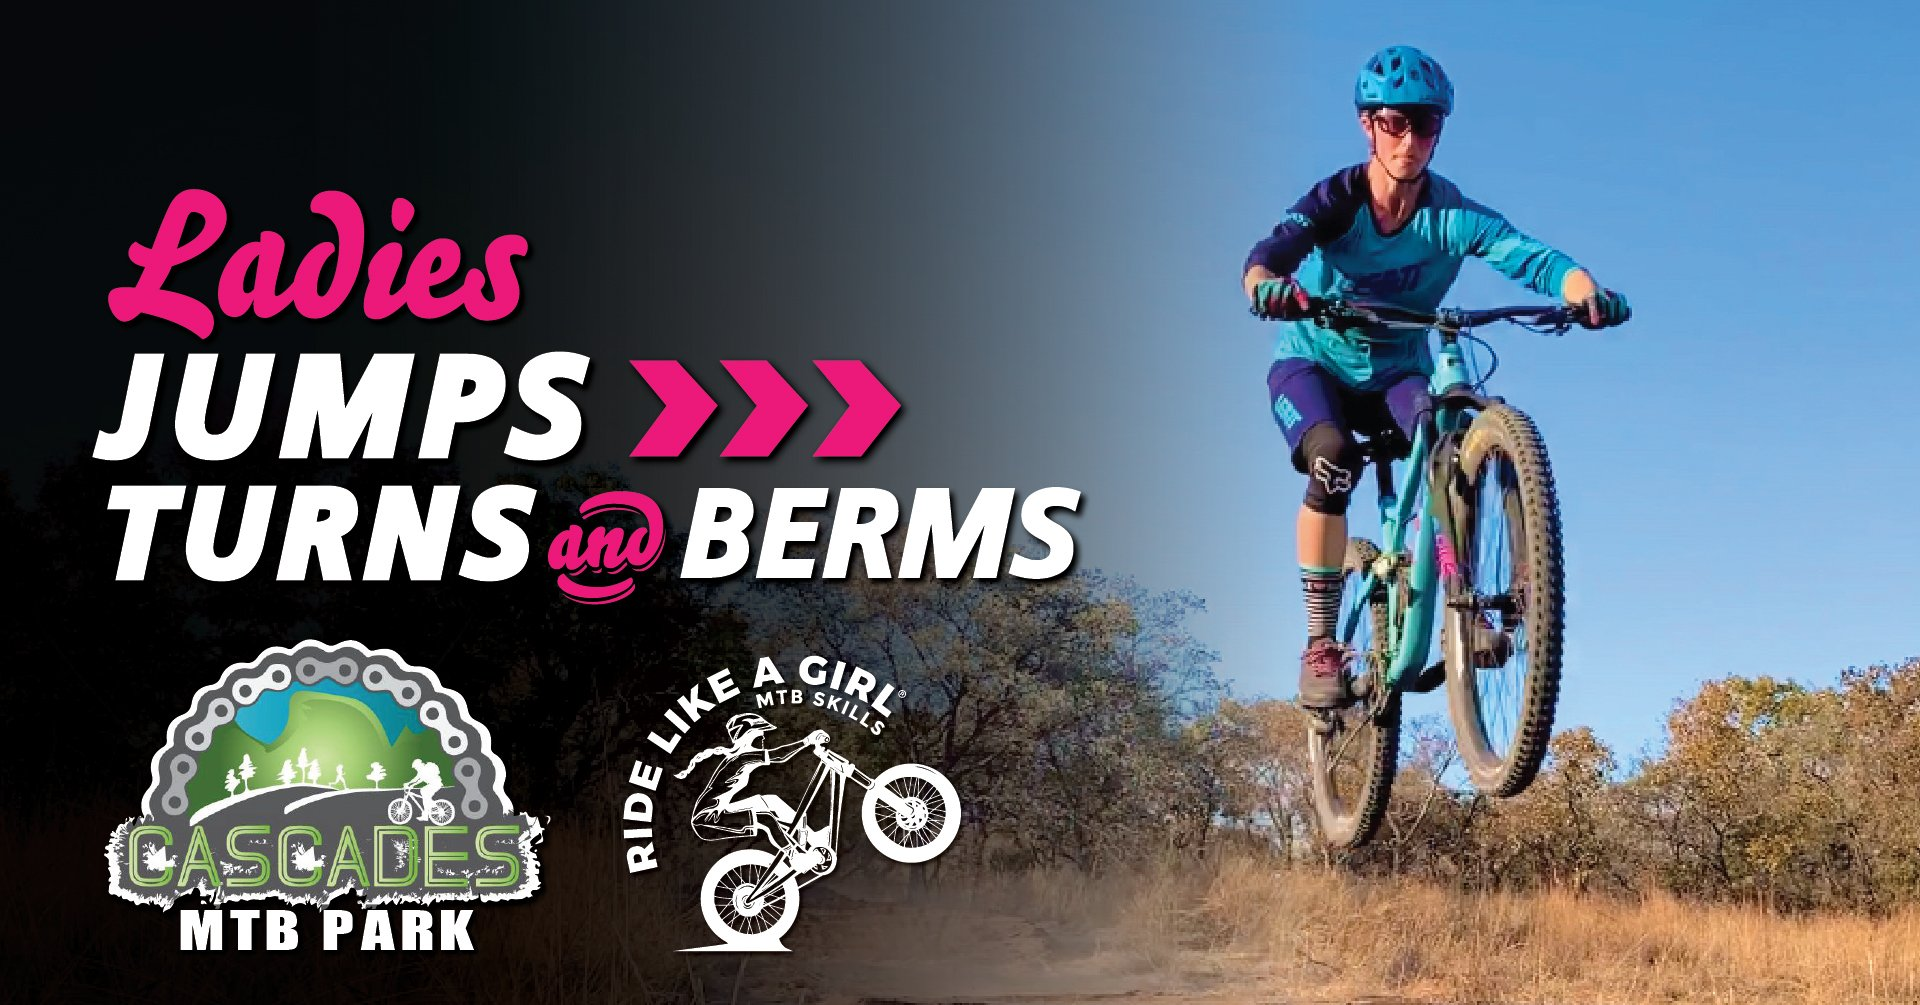 Cascades* - Ladies Jumps Turns & Berms MTB Skills Clinic